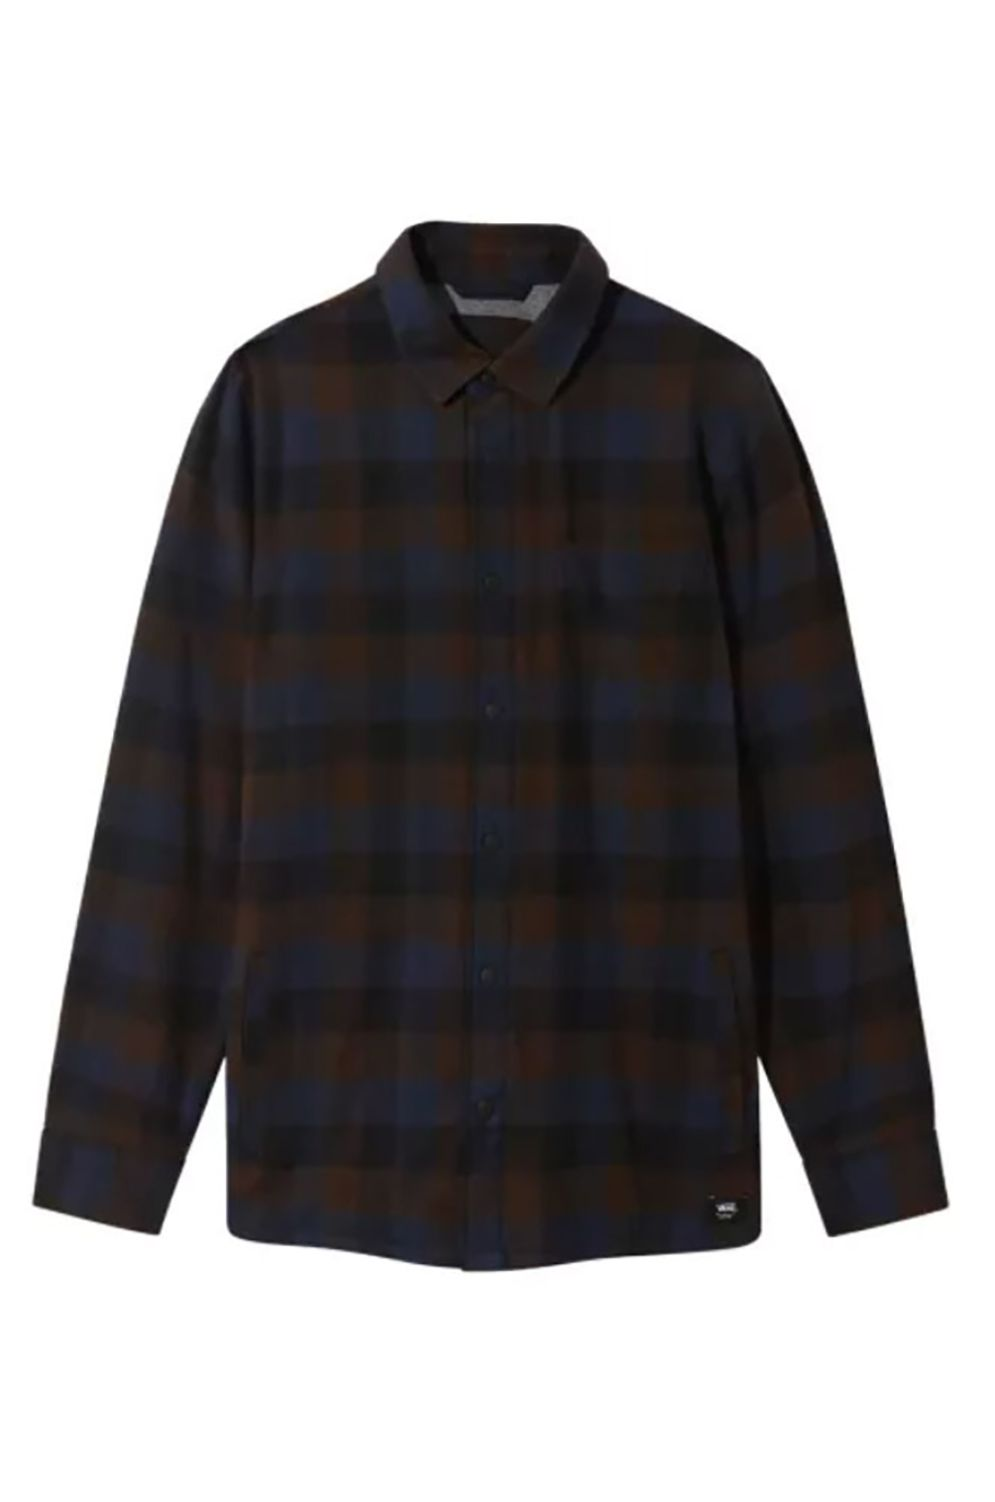 Vans Shirt OLSON Black-Demitasse